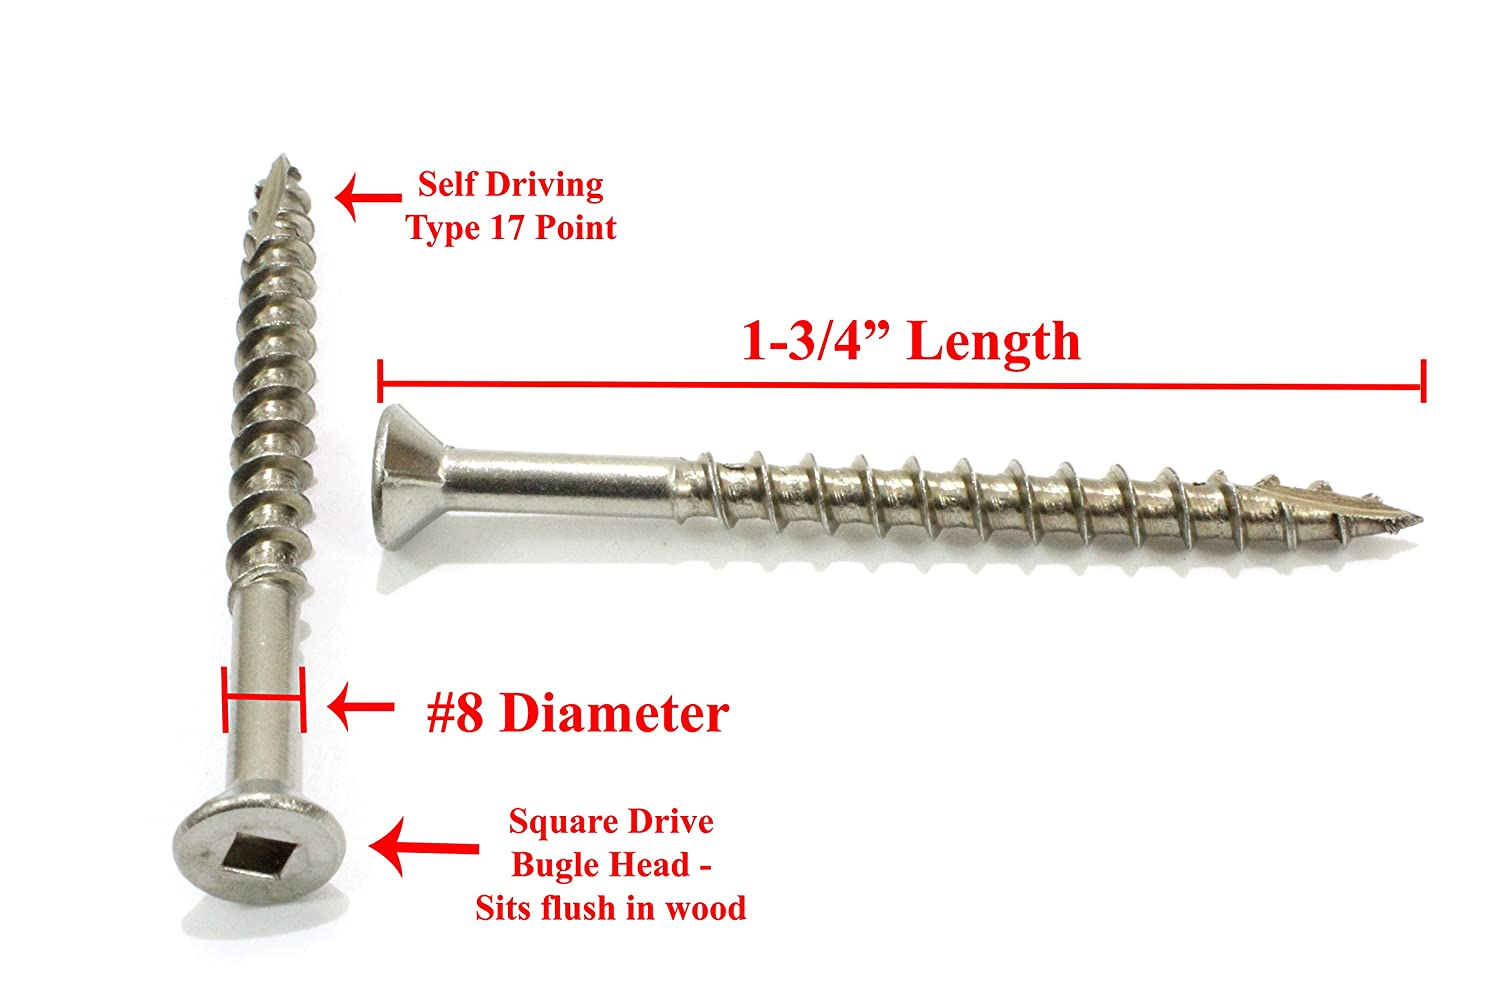 Square Drive Type 17 Wood Cutting Point Stainless Steel #8 x 2-1//2 Stainless Deck Screws, Hidden Fasteners by Bolt Dropper 100 Pack 305 18-8